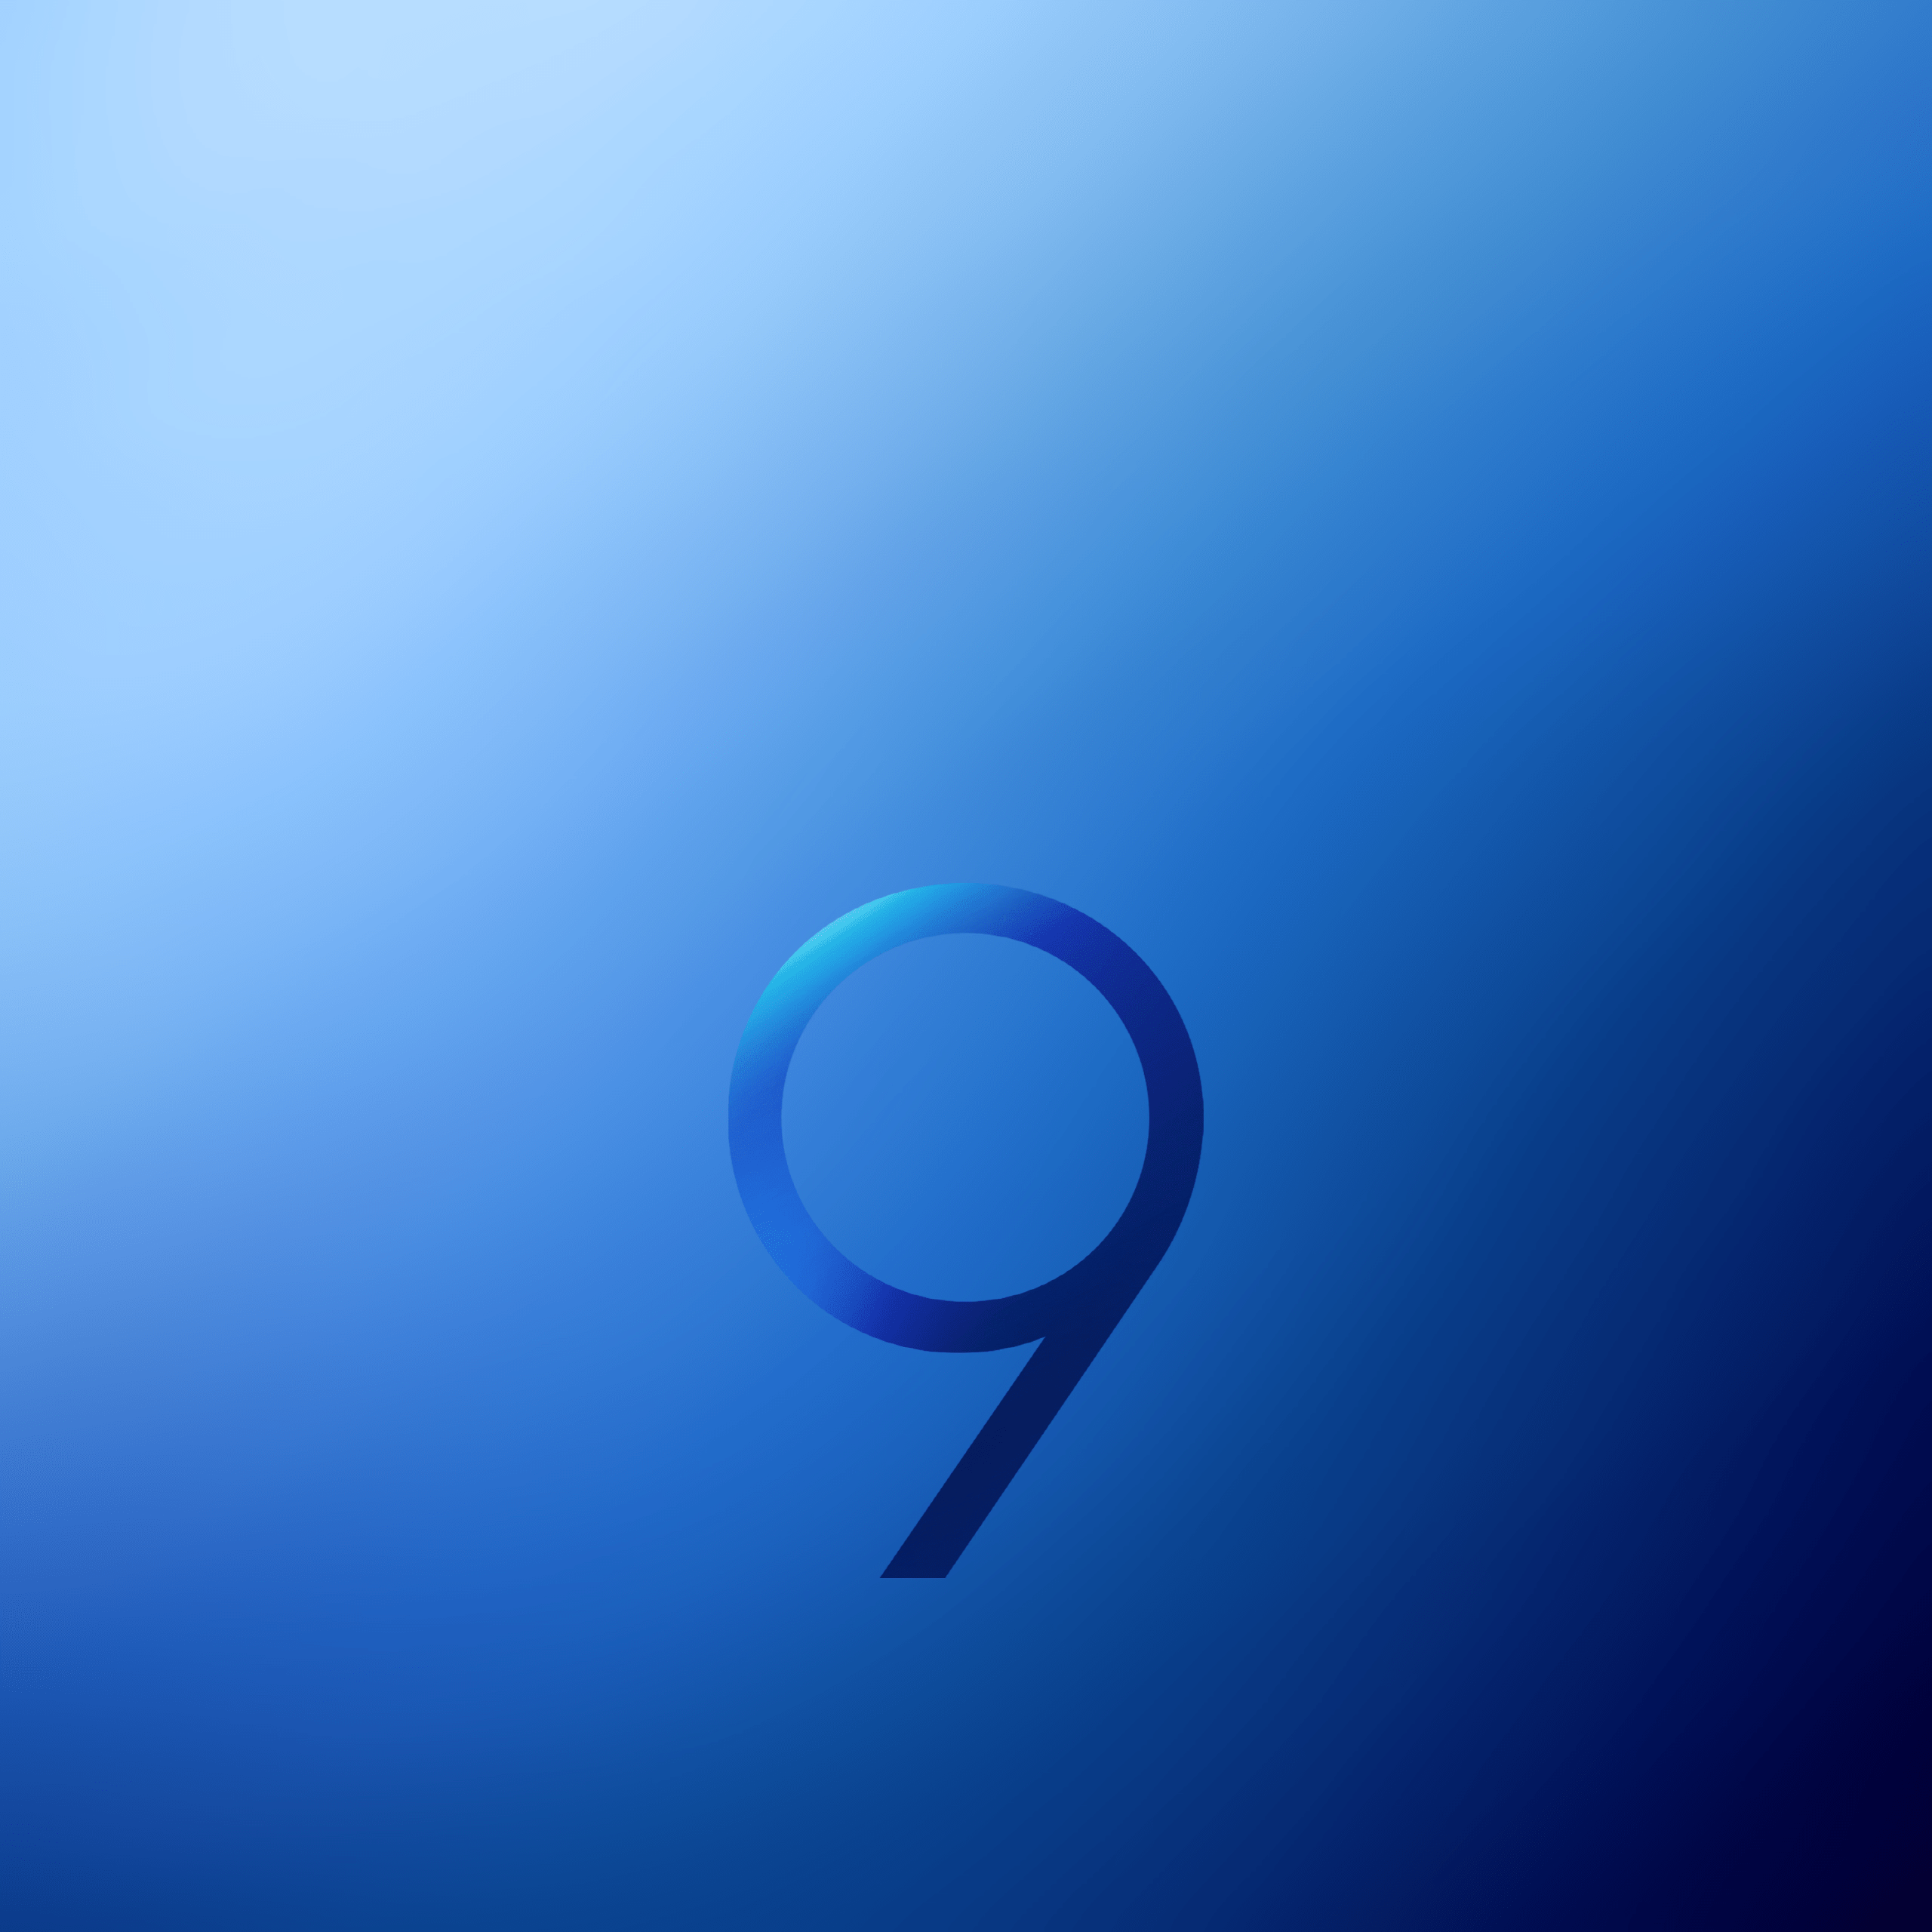 Samsung Galaxy S9 Plus Wallpapers Wallpaper Cave